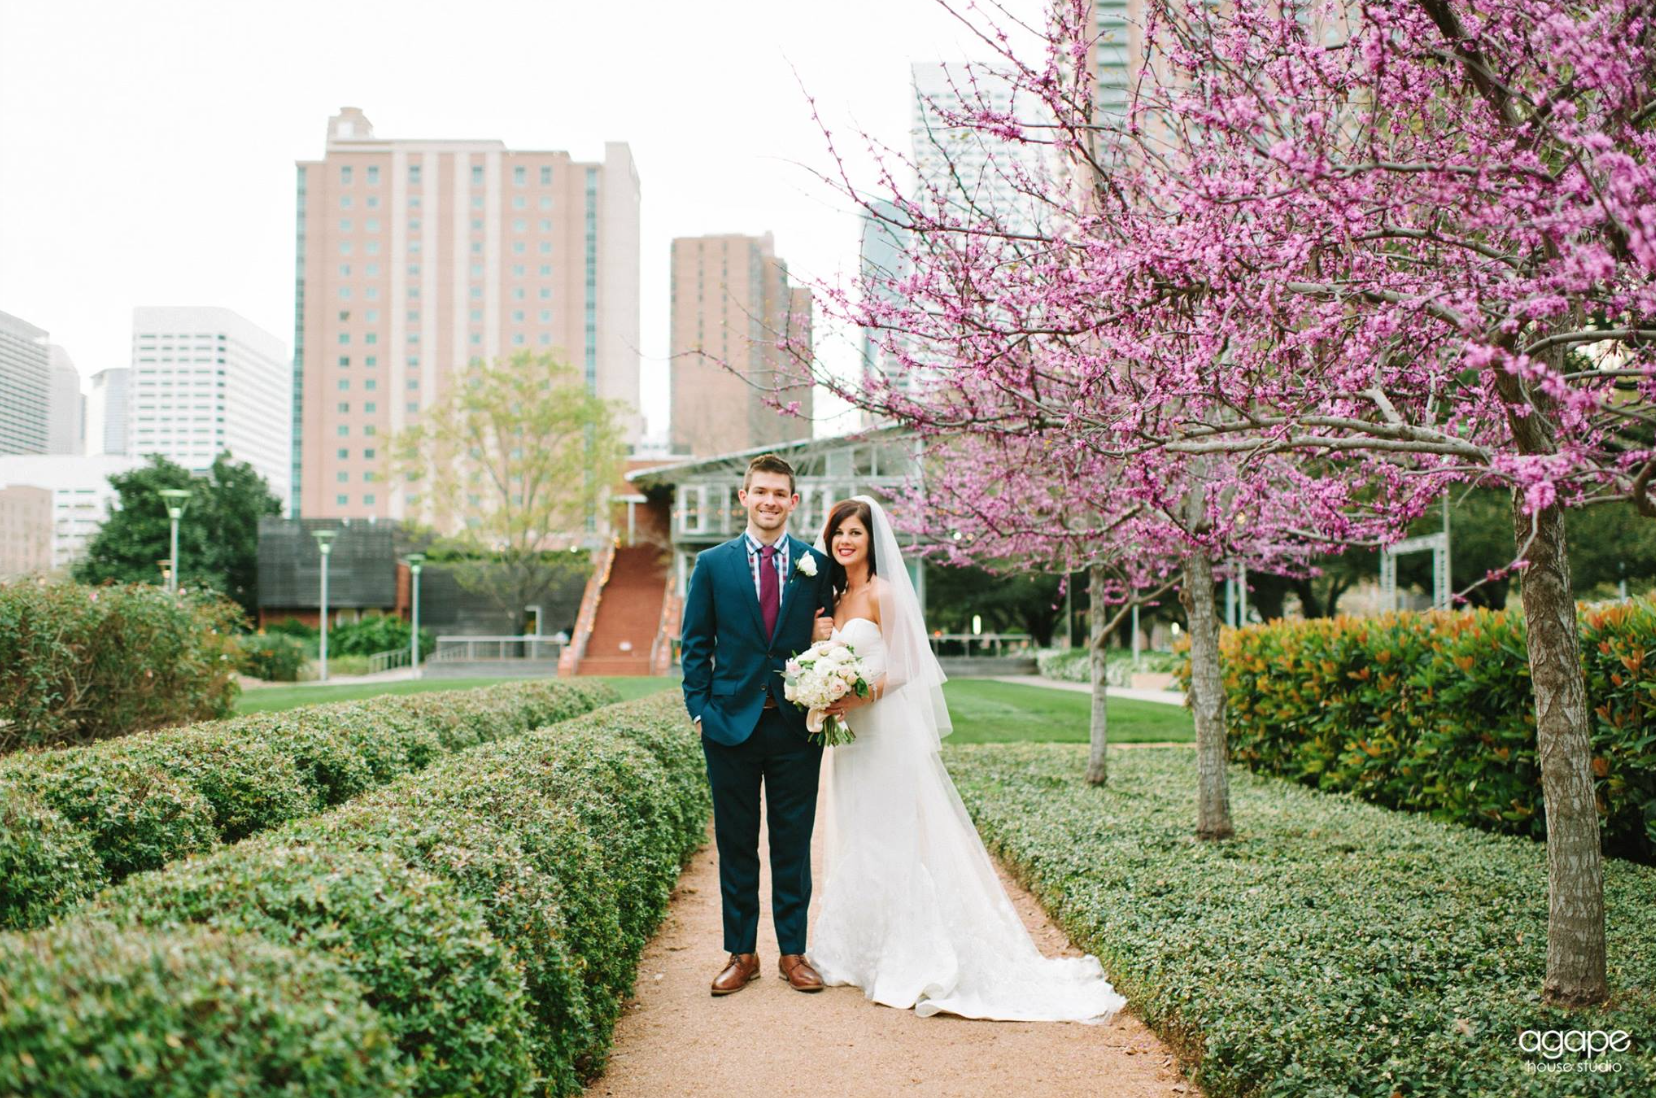 The Grove Houston, Agape Photography, Houston Wedding Florist, Maxit Flower Design